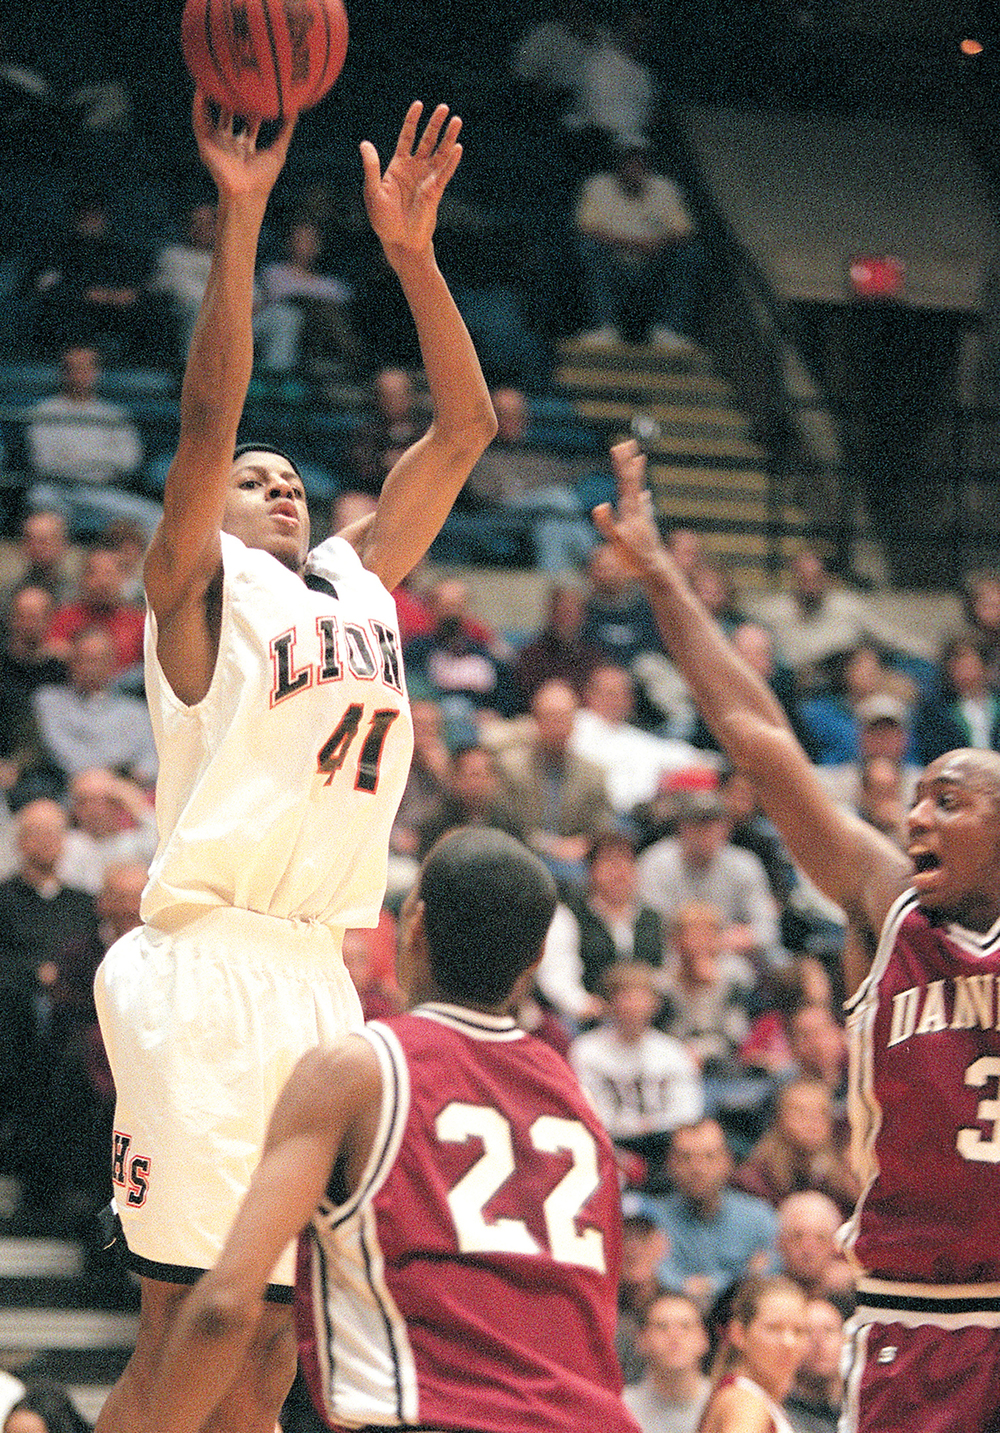 Lanphier High School's Andre Iguodala shoots over Danville defenders during the IHSA Class AA Sectional tournament, March 2001. File/The State Journal-Register